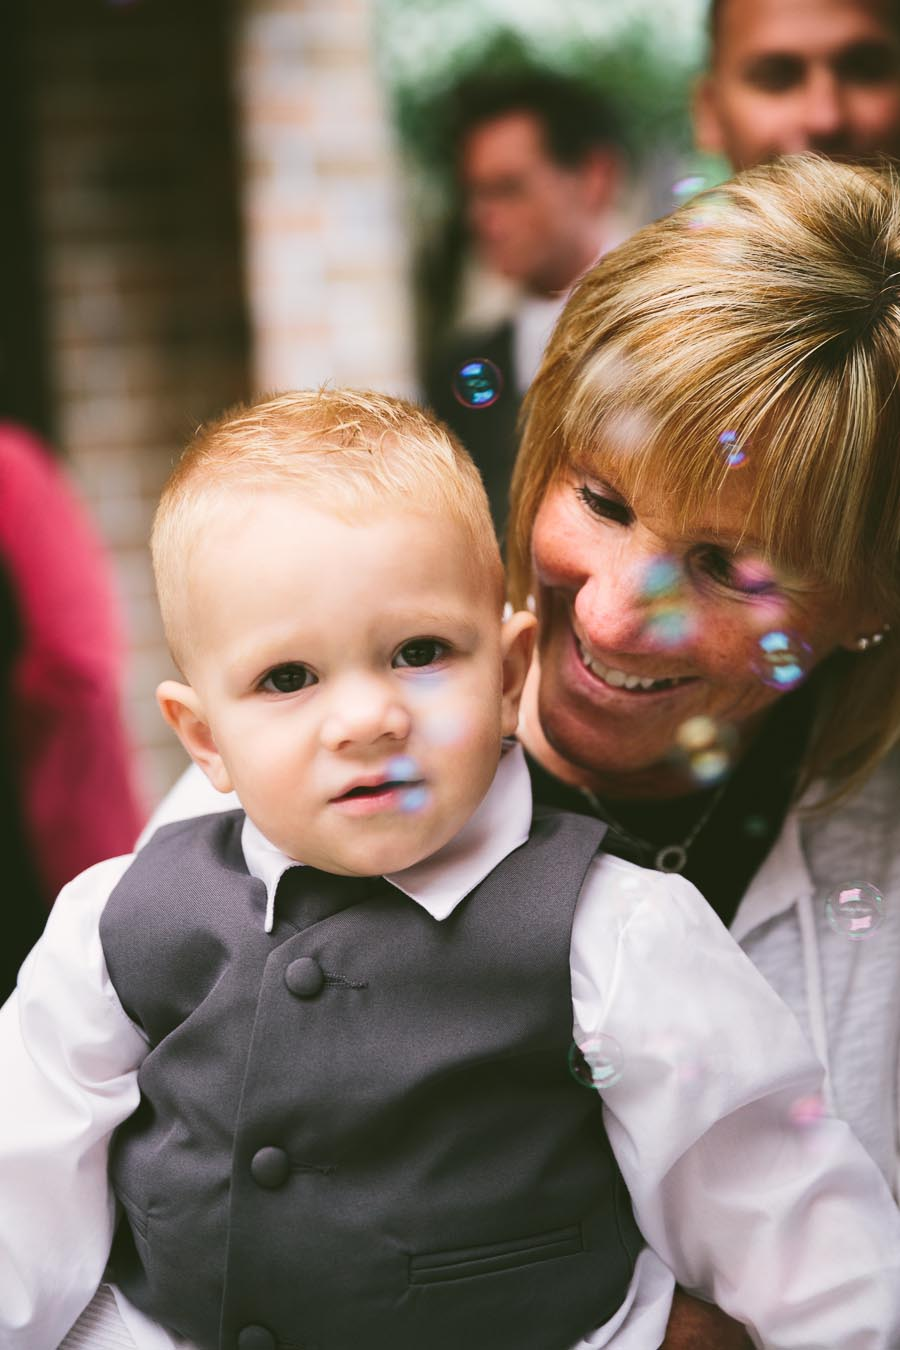 north-olmsted-ohio-wedding-photography-st-clarence-29.jpg